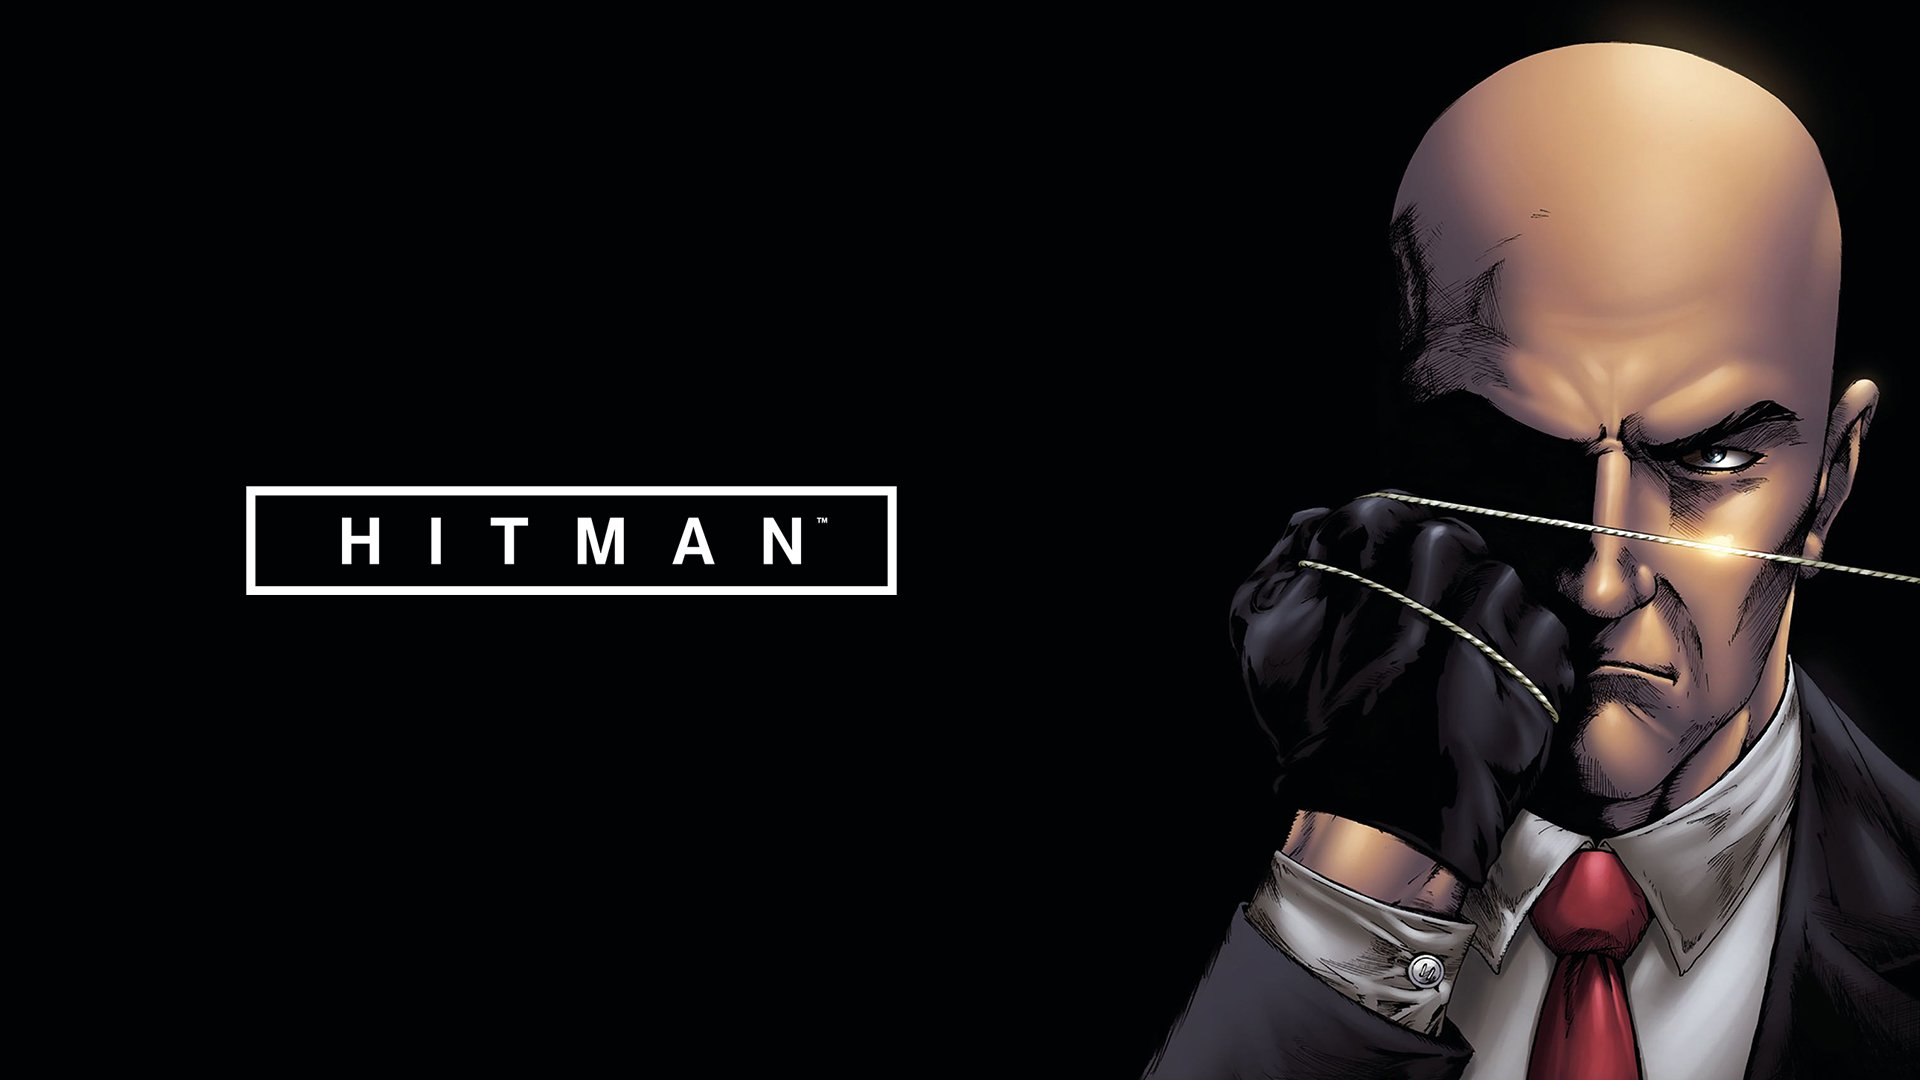 Hitman Hd Wallpaper Background Image 1920x1080 Id 1040124